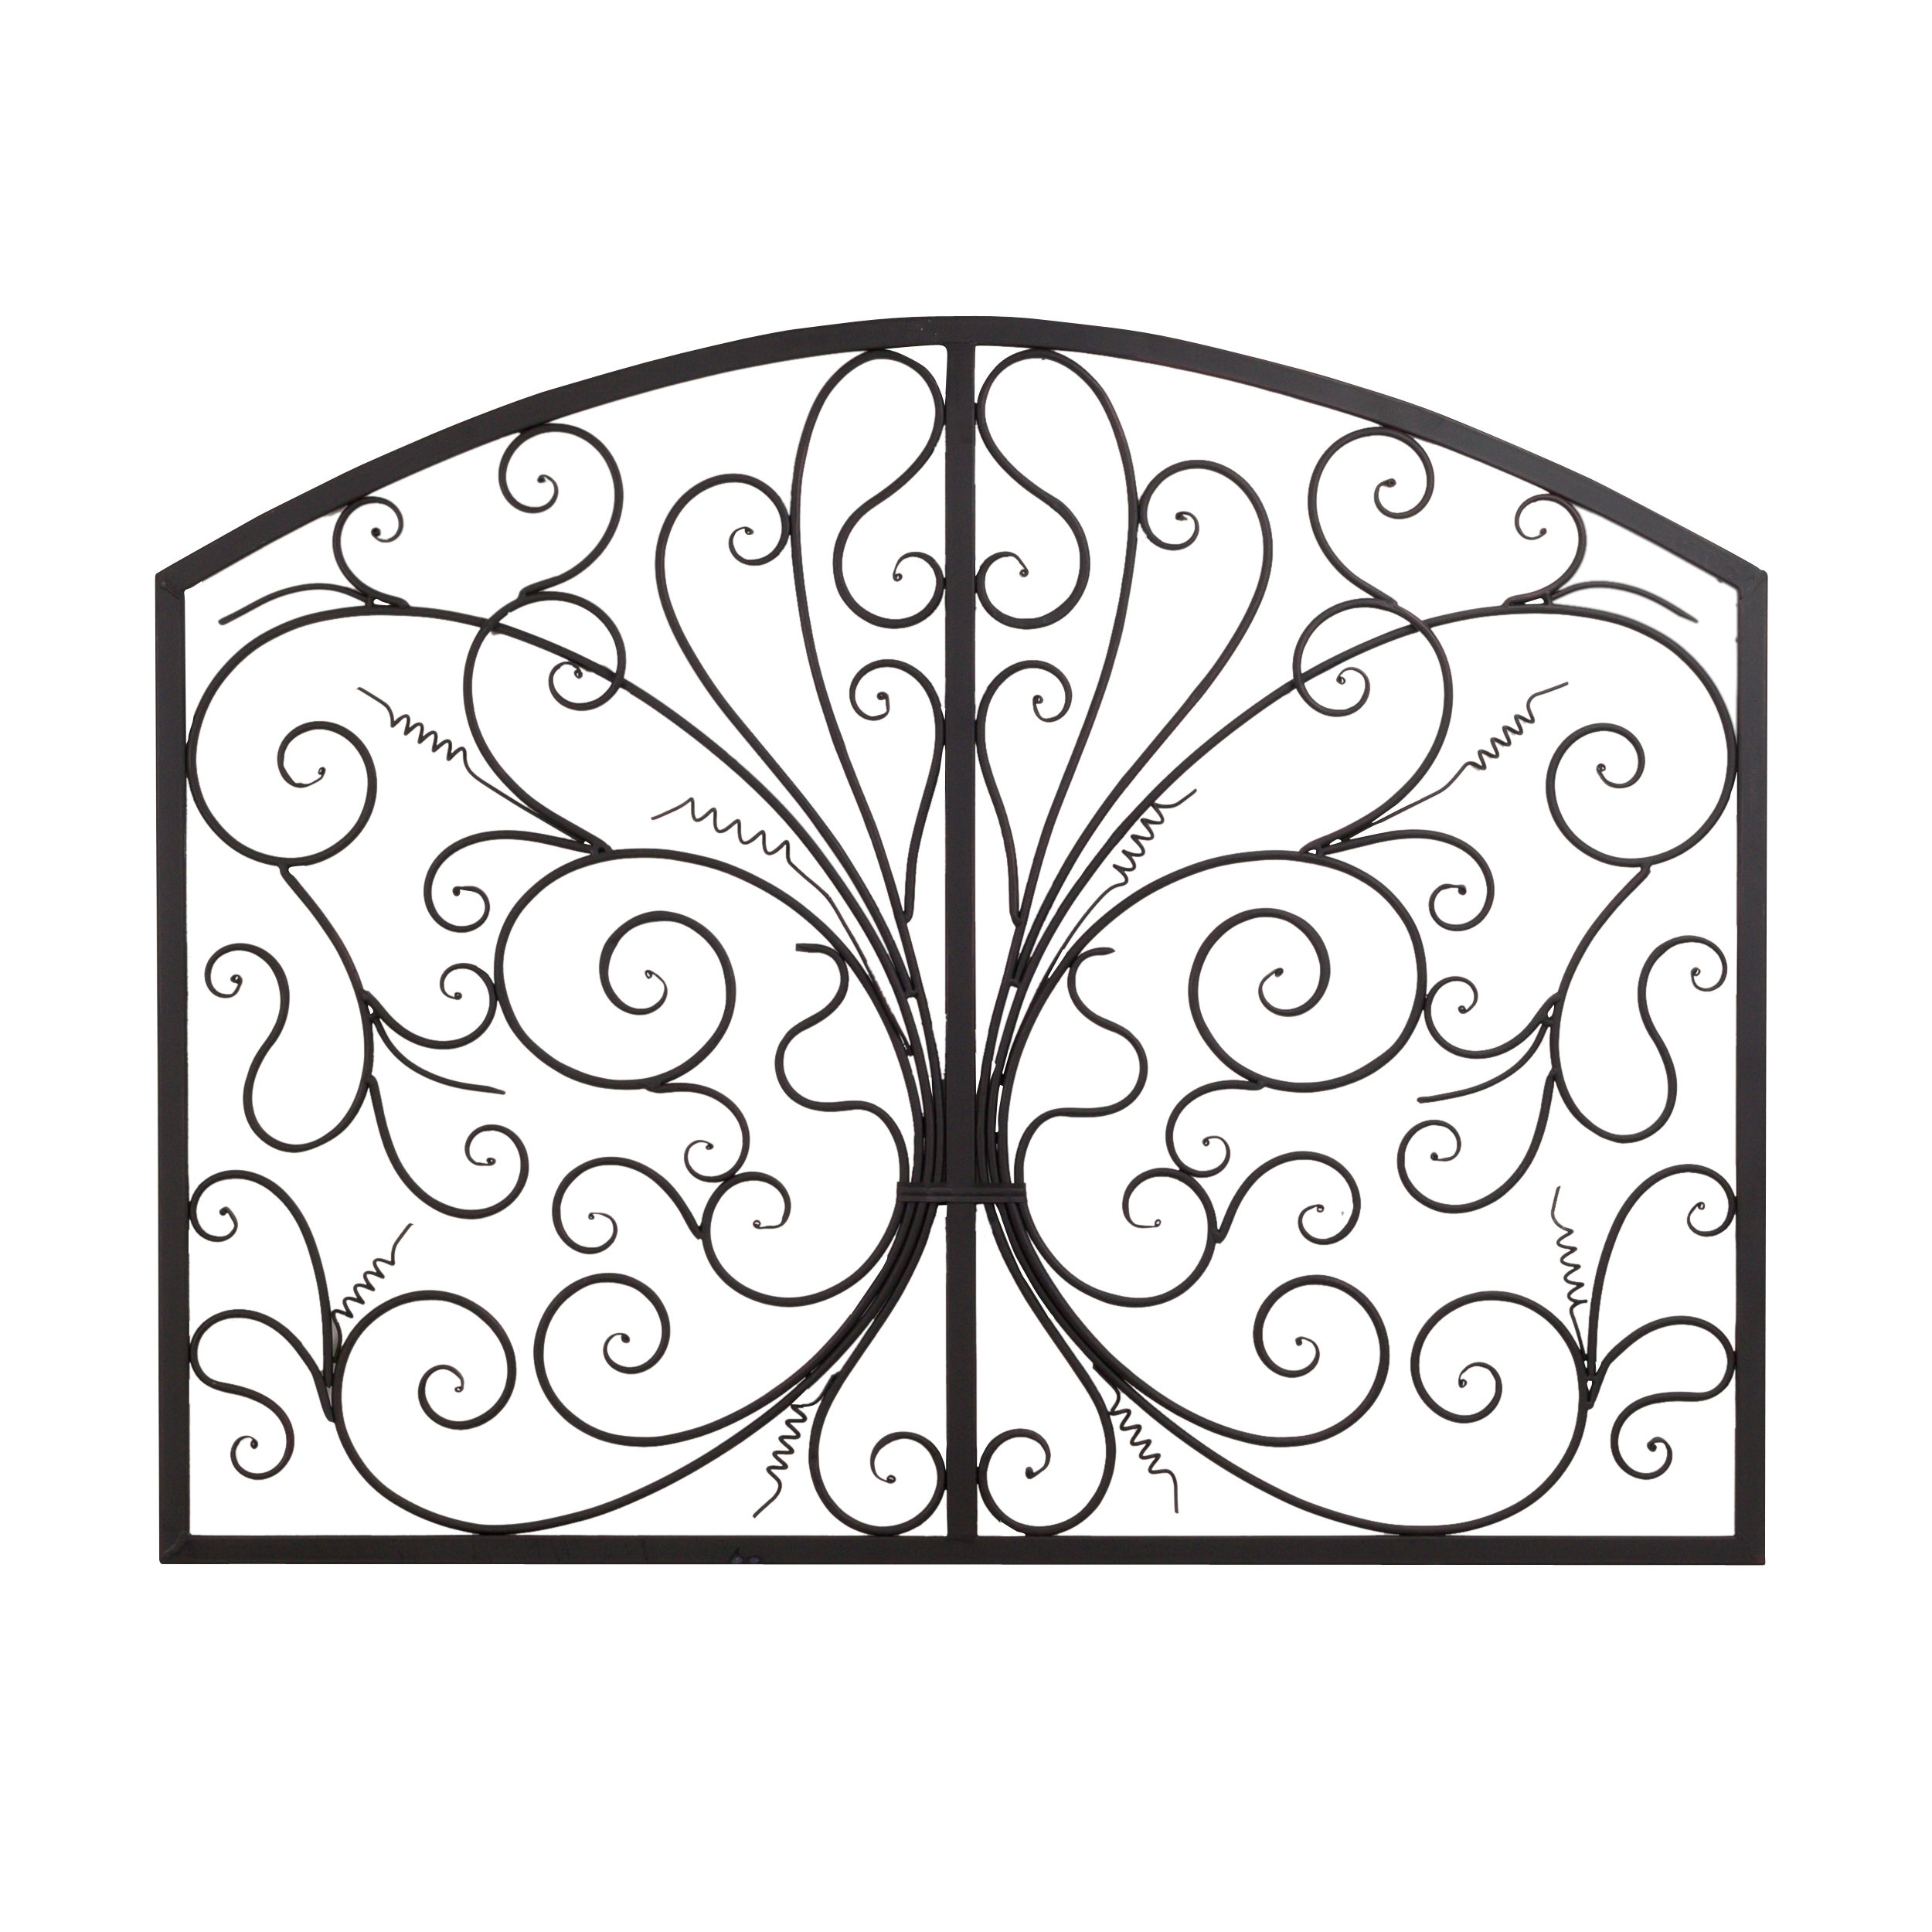 Bayaccents Metal Scroll Complex Panel Wall Decor & Reviews | Wayfair with regard to Metal Scroll Wall Art (Image 5 of 20)